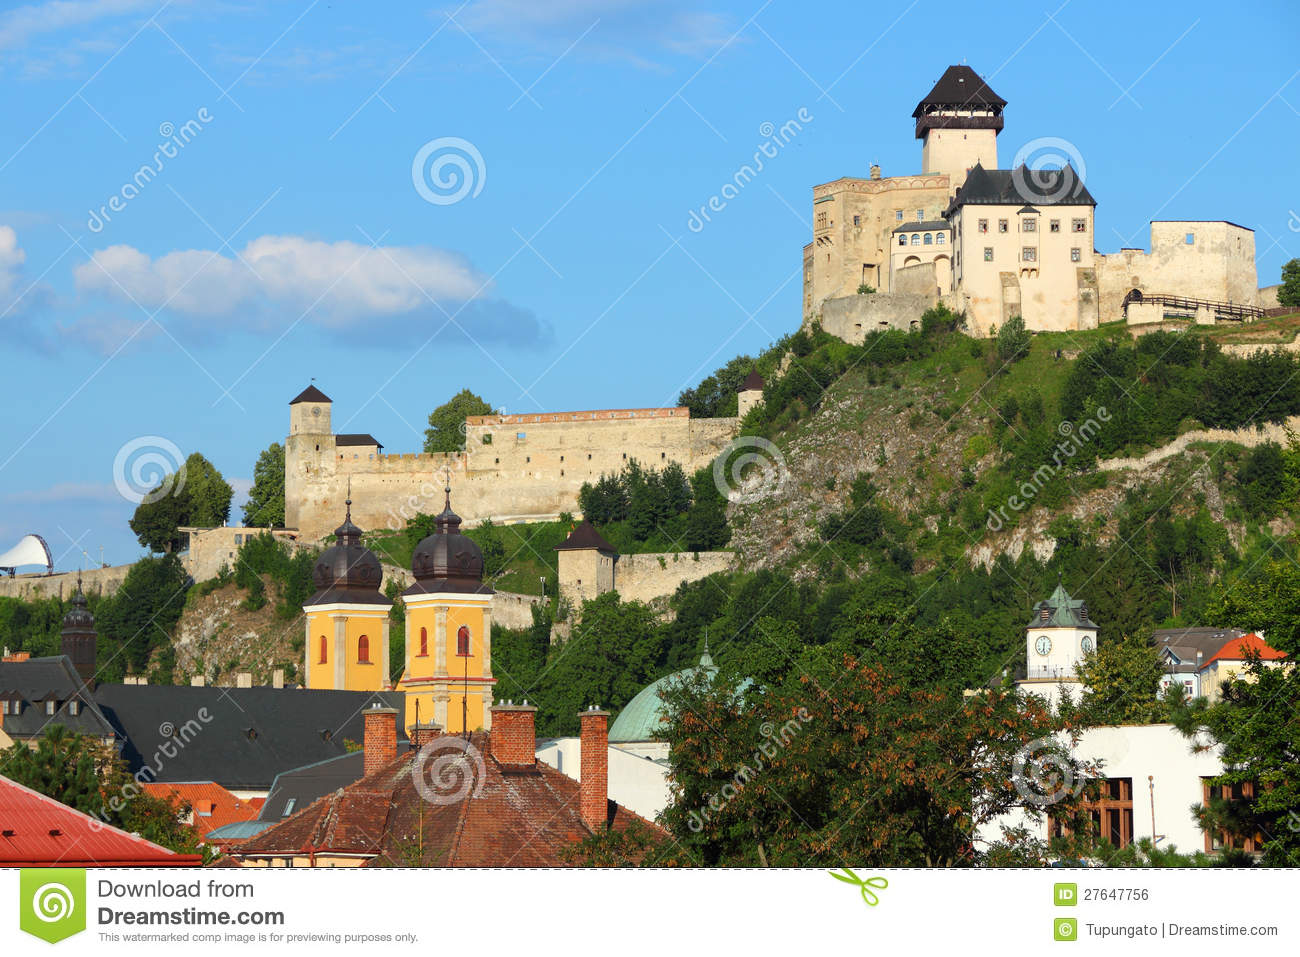 Trencin Slovakia  City pictures : Trencin, Slovakia Royalty Free Stock Image Image: 27647756